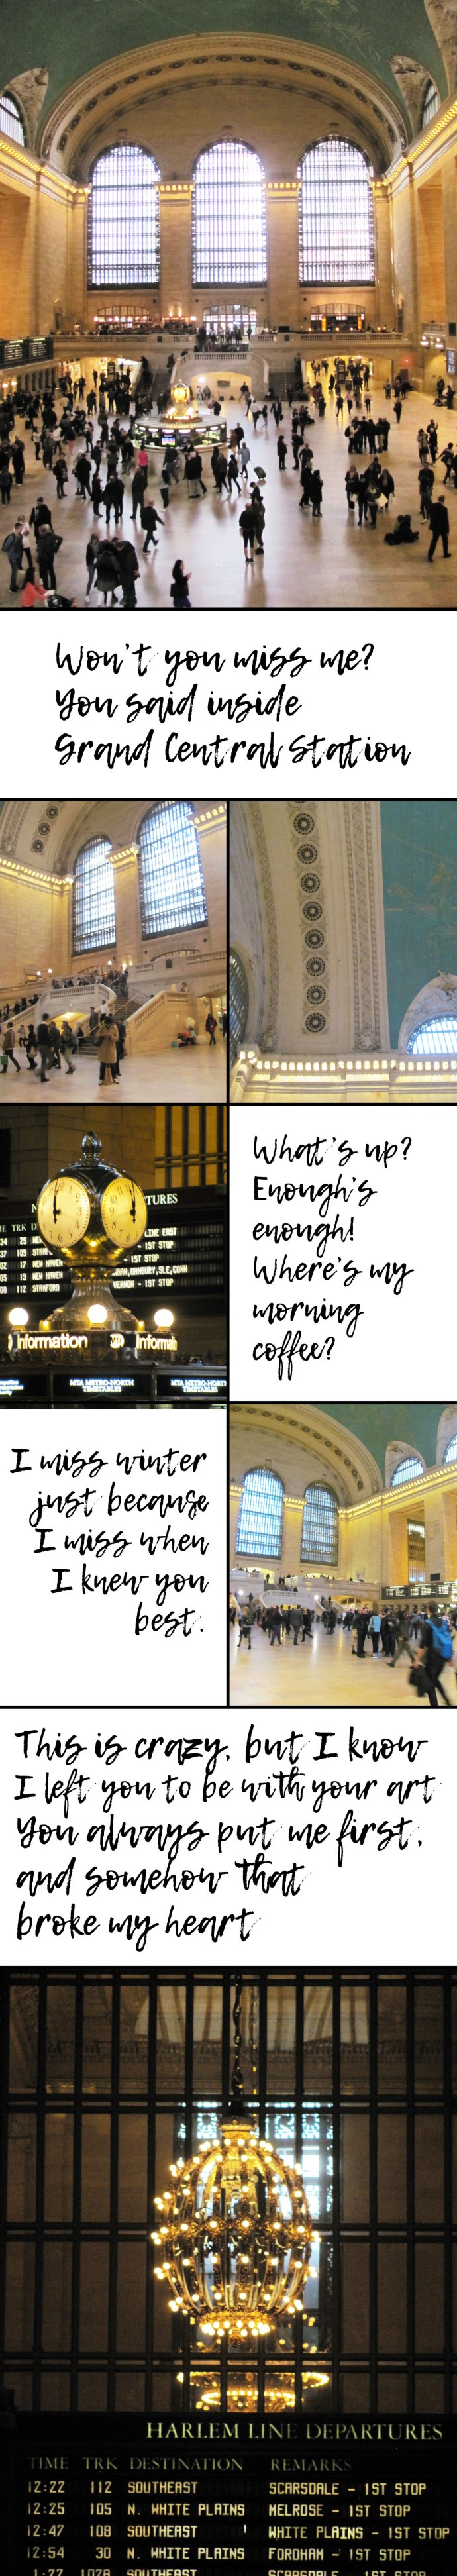 grand-central_blog-grids-01